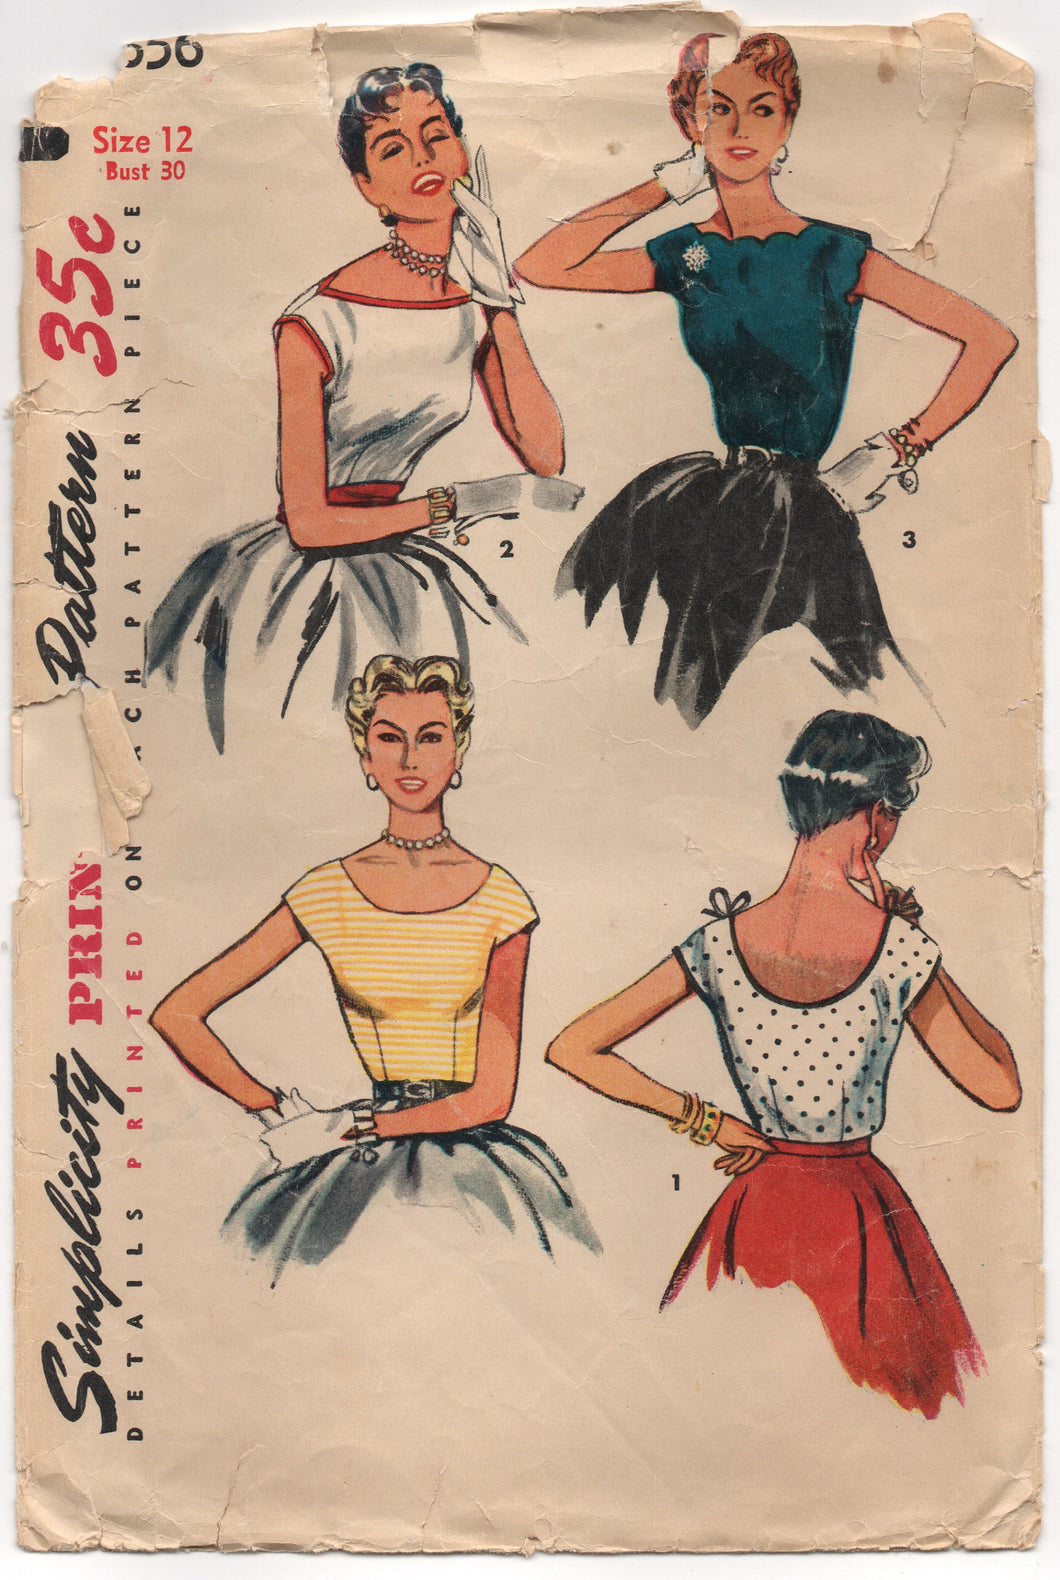 1950's Simplicity Blouse Pattern with Scallop, Straight or Curved Neckline - Bust 30